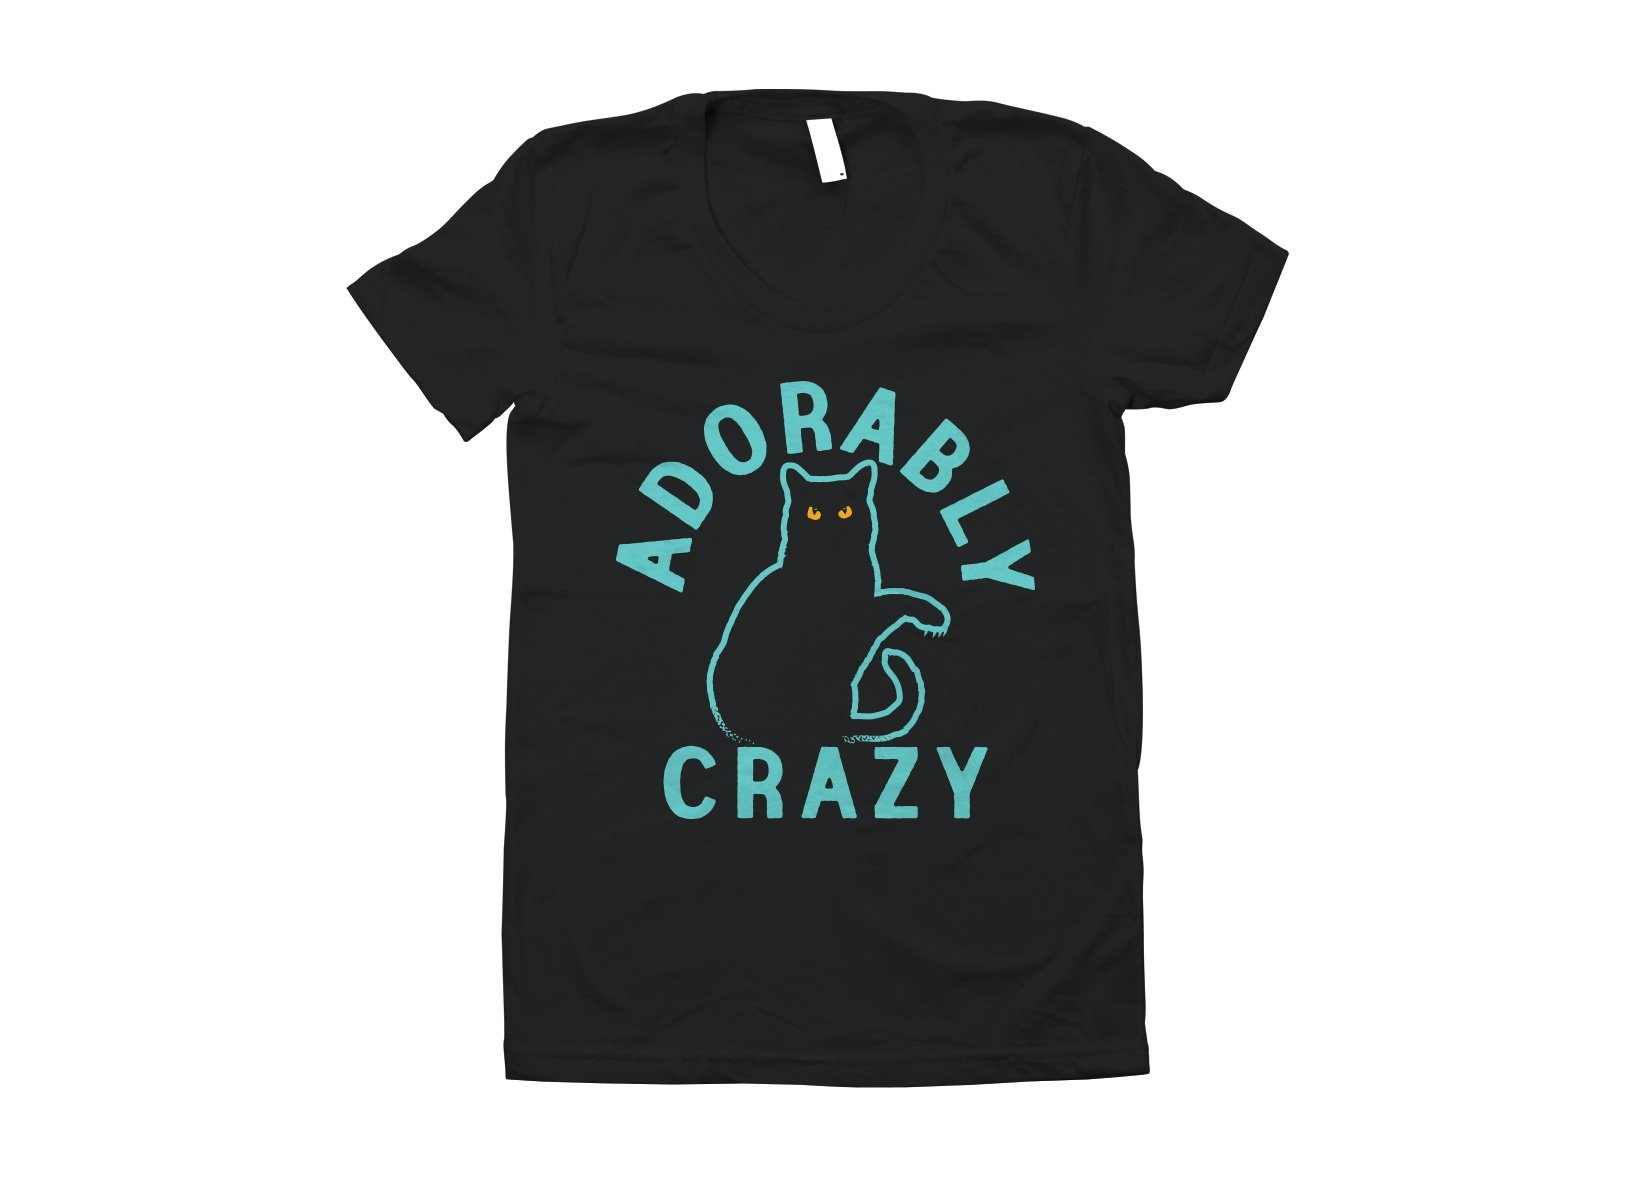 Adorably Crazy on Juniors T-Shirt